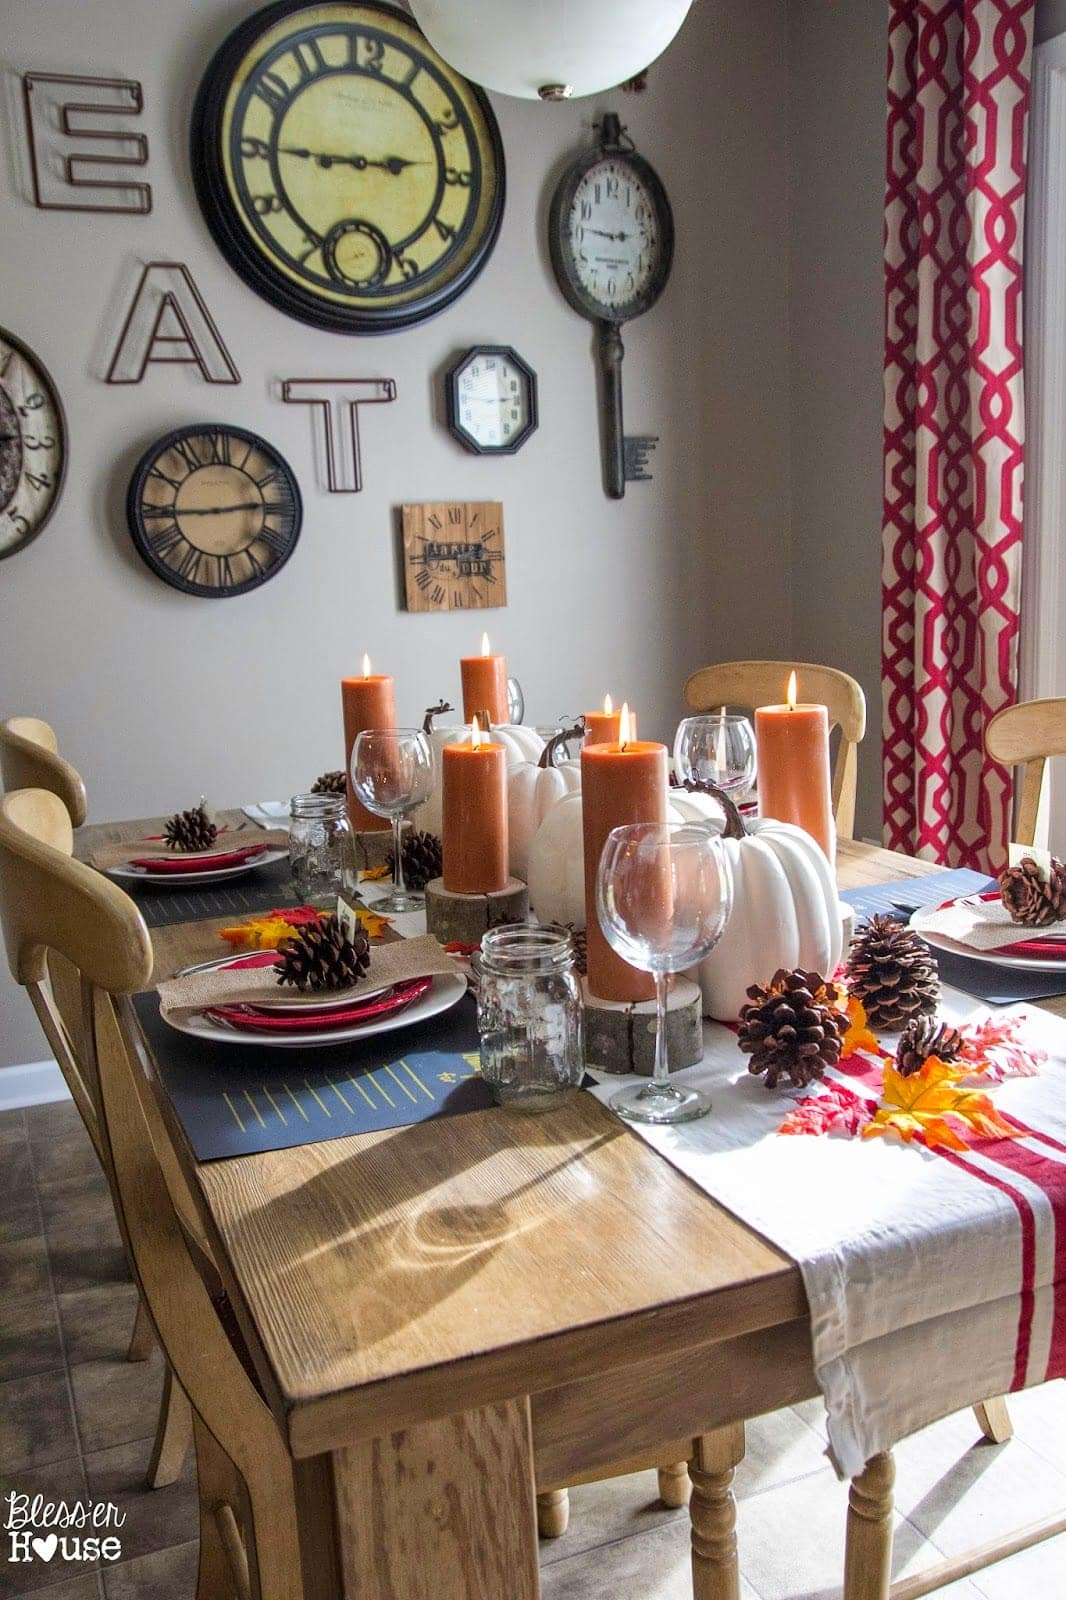 Bless'er House | Dollar Store Thanksgiving Tablescape